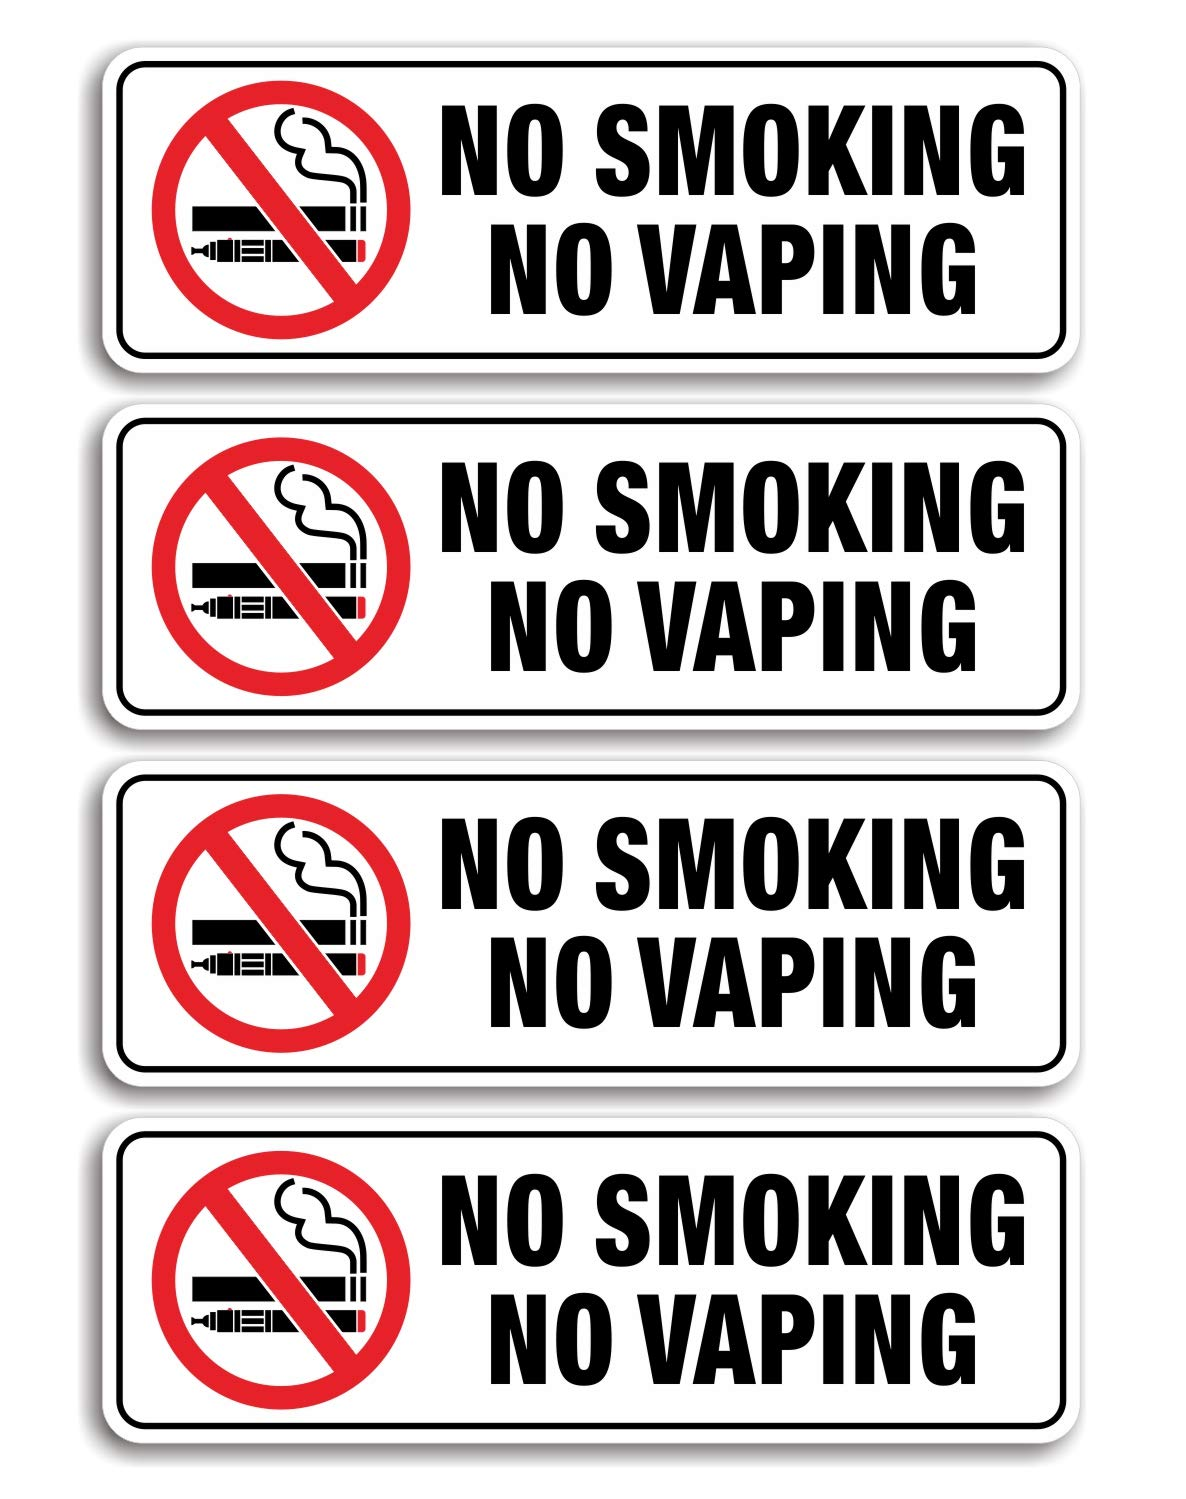 No Smoking No Vaping Sign, (4 Pack) 9 X 3 Inch, Self-Adhesive, Use for Home Office/Business, Easy to Apply, Black Big Letters on White Plate